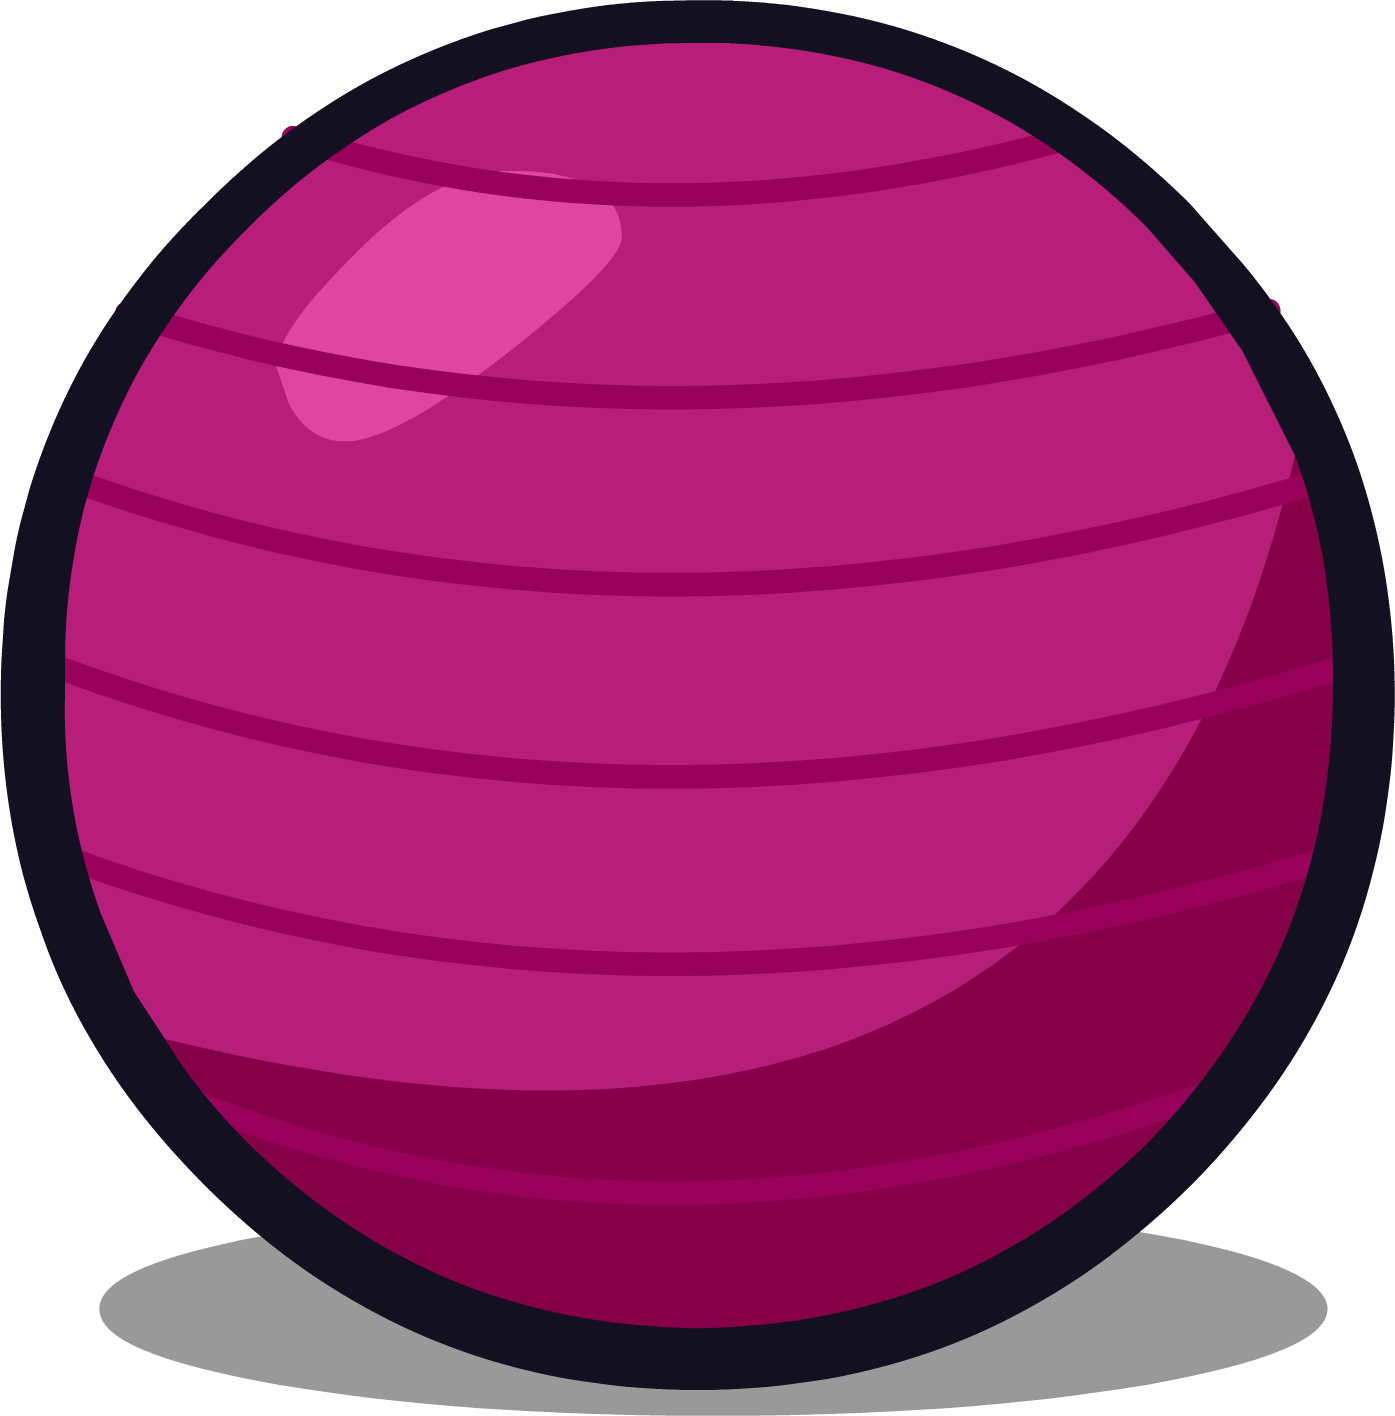 picture royalty free library Exercise Ball